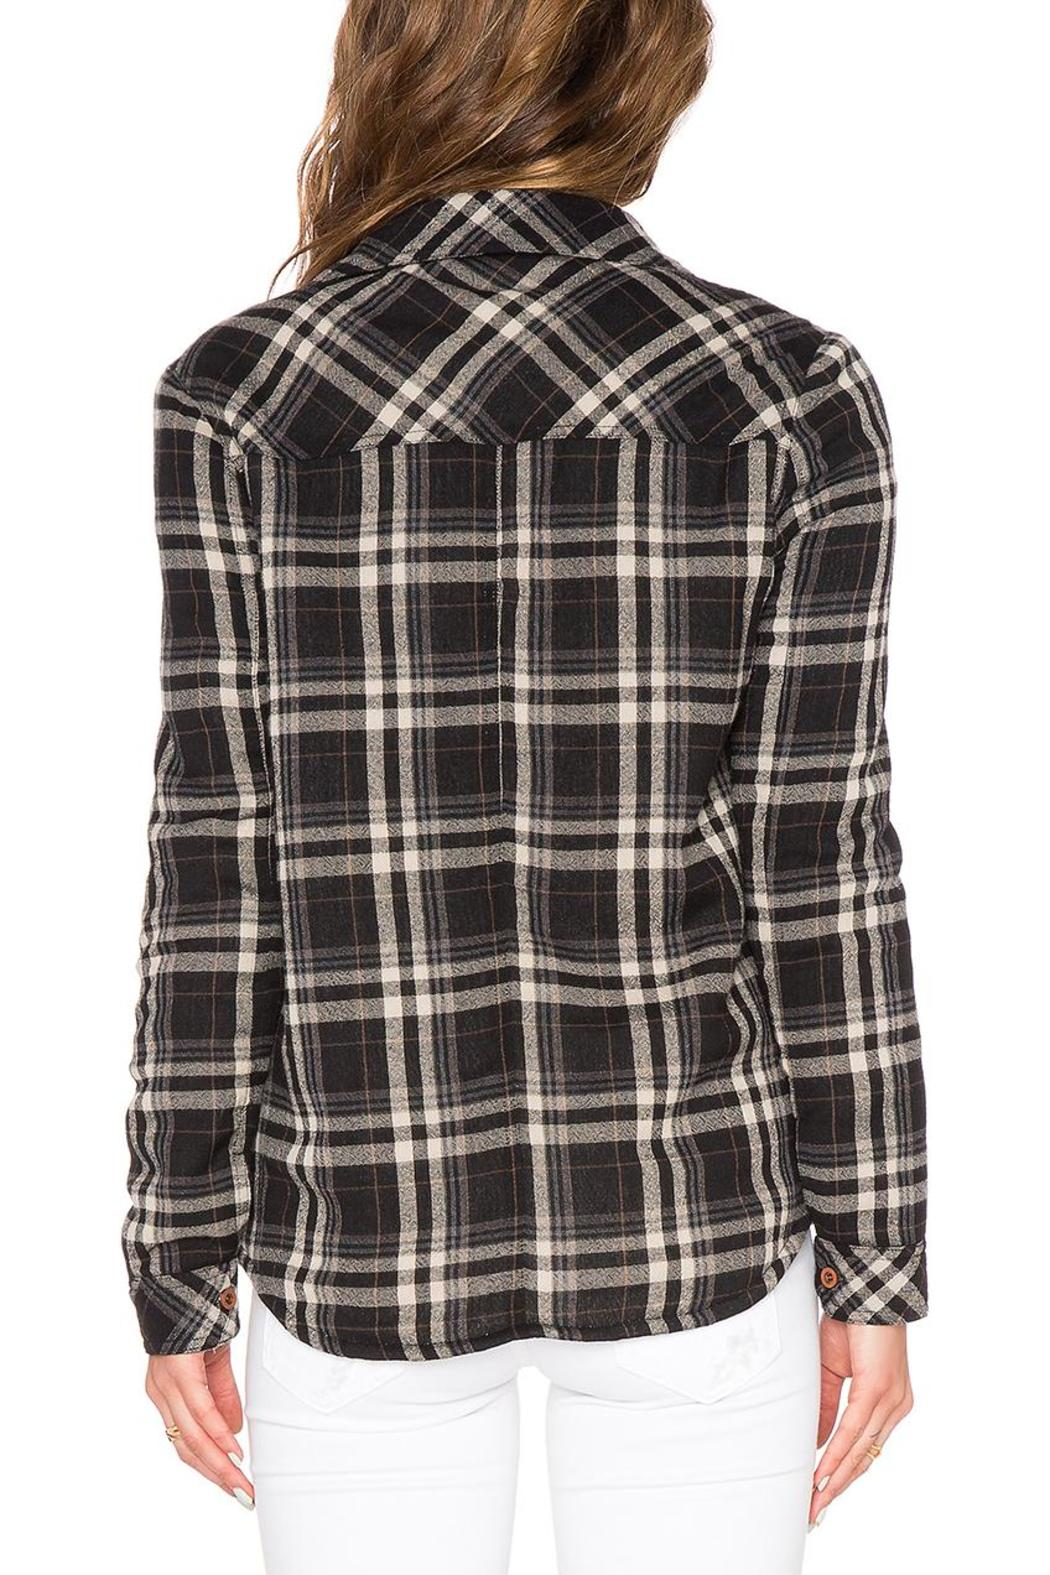 d.RA Fleece Lined Button-Up - Back Cropped Image